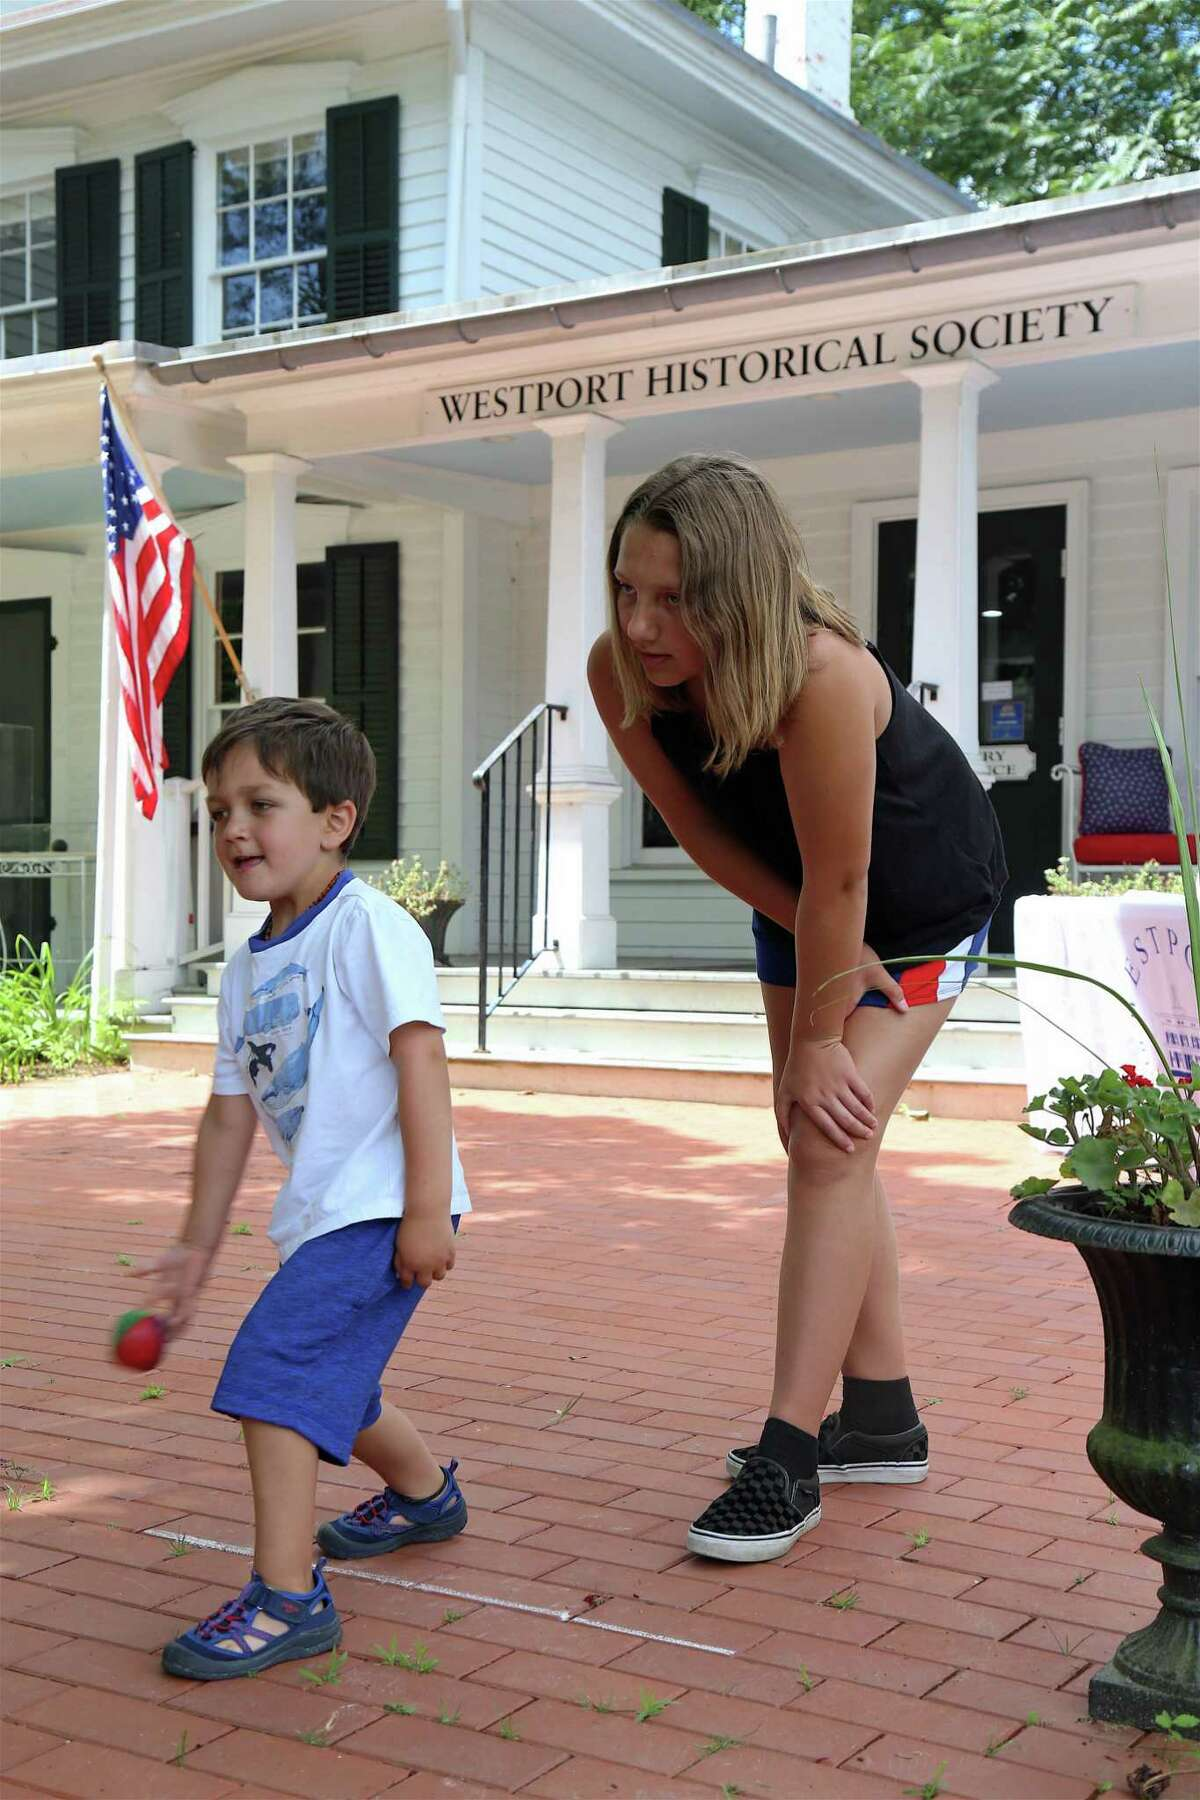 William Duffy, 4, of Colorado Springs, Colorado, and his sister, Bridget, 11, play a game at the Westport Historical Society's family day event commemorating the 1779 burning of Greens Farms, on Saturday, July 13, 2019, in Westport, Conn.